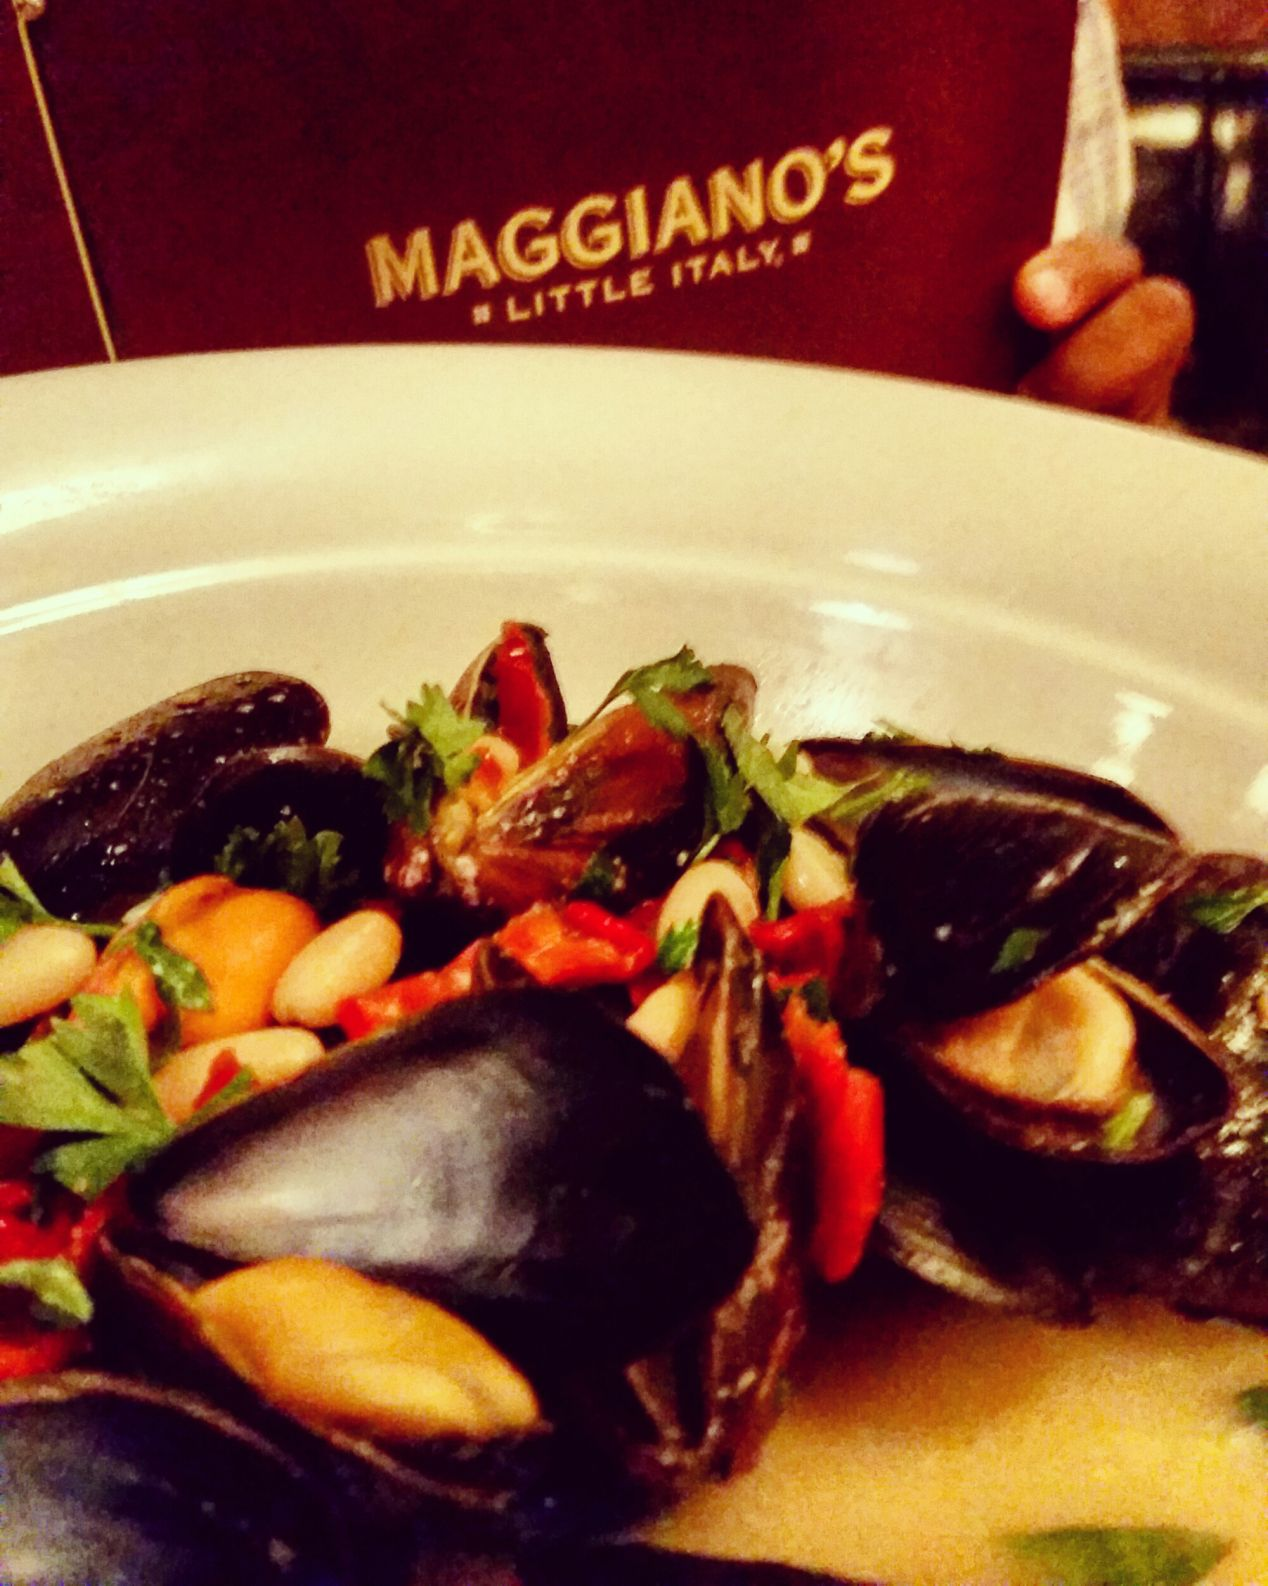 Disclaimer: I received a $25 gift card courtesy of Maggiano's to ...